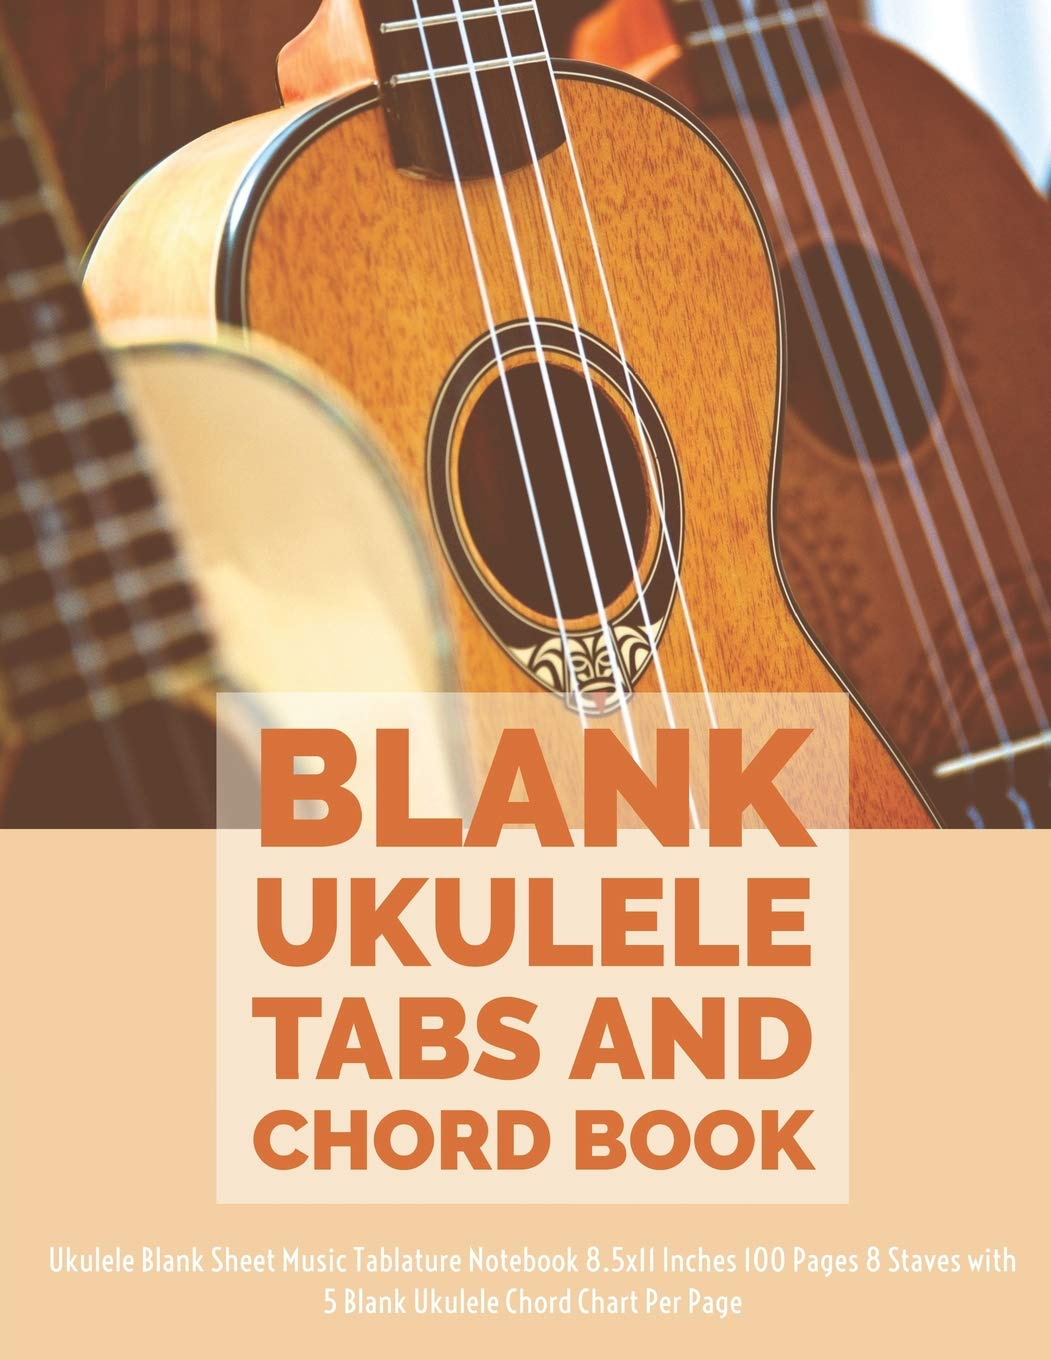 Amazon com: Blank Ukulele Tabs and Chord Book: Ukulele Blank